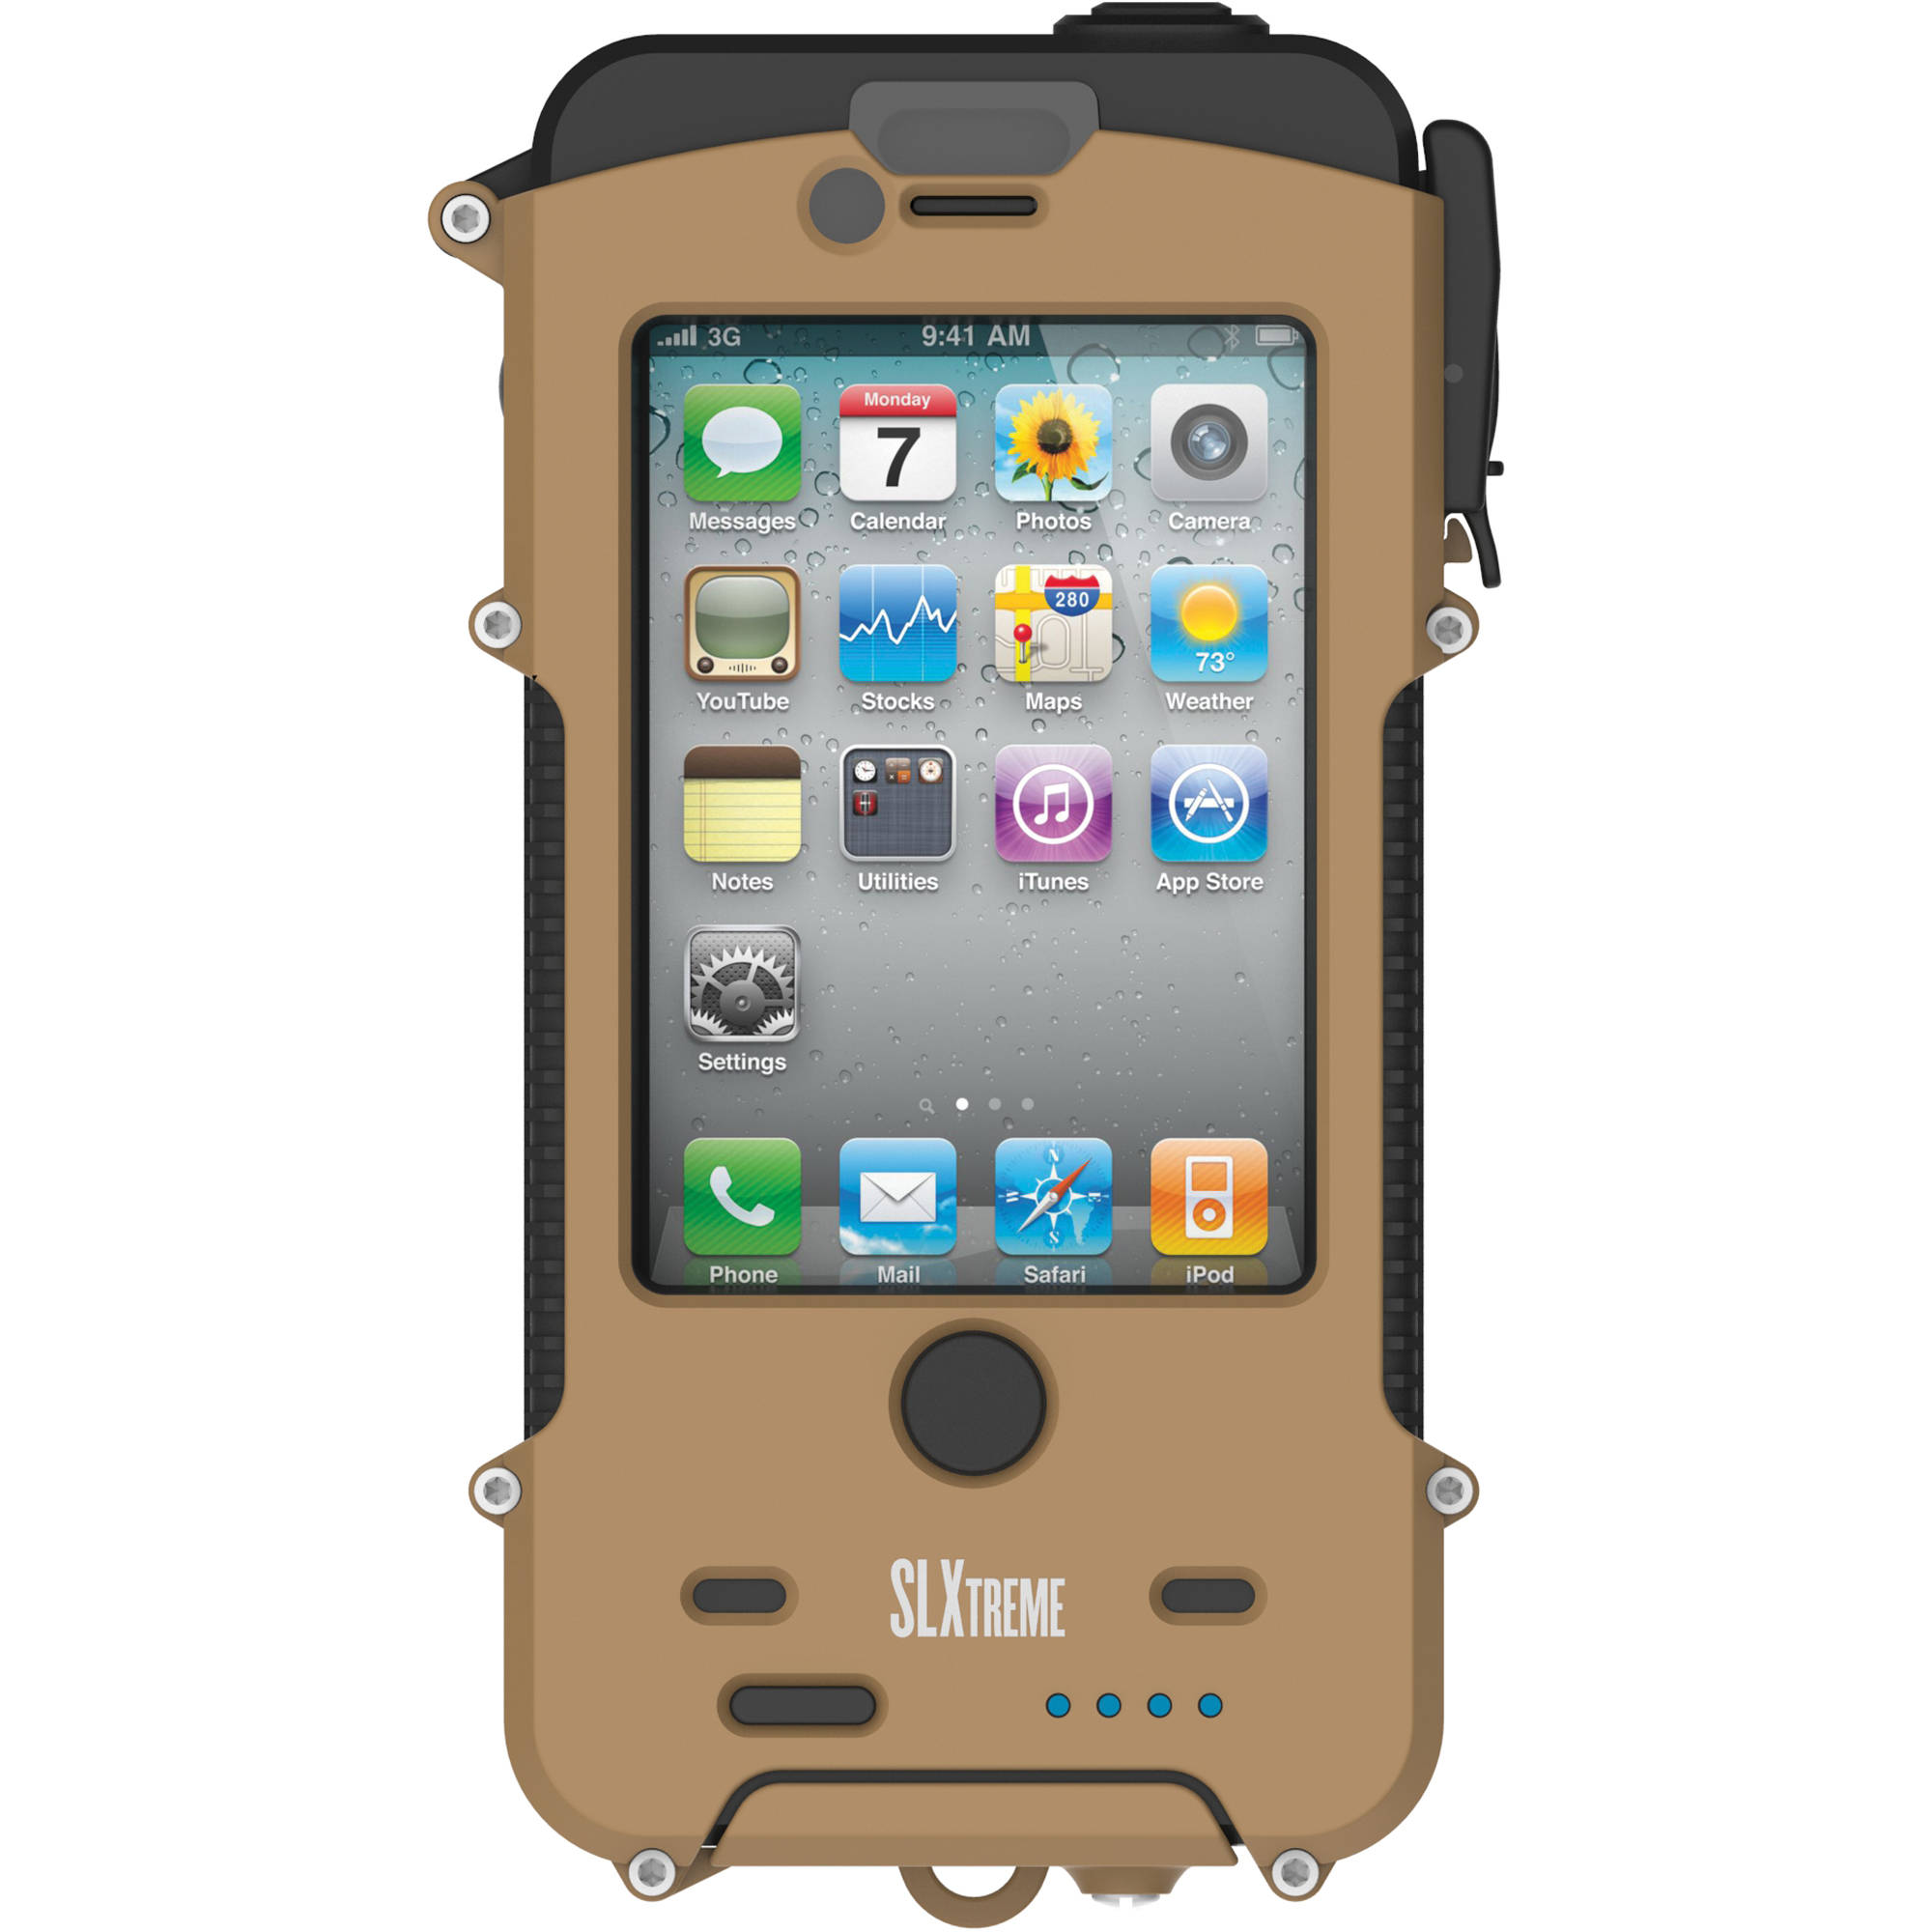 Snow Lizard SLXTREME 4 Waterproof Case for iPhone 4/4s (Coyote Tan)